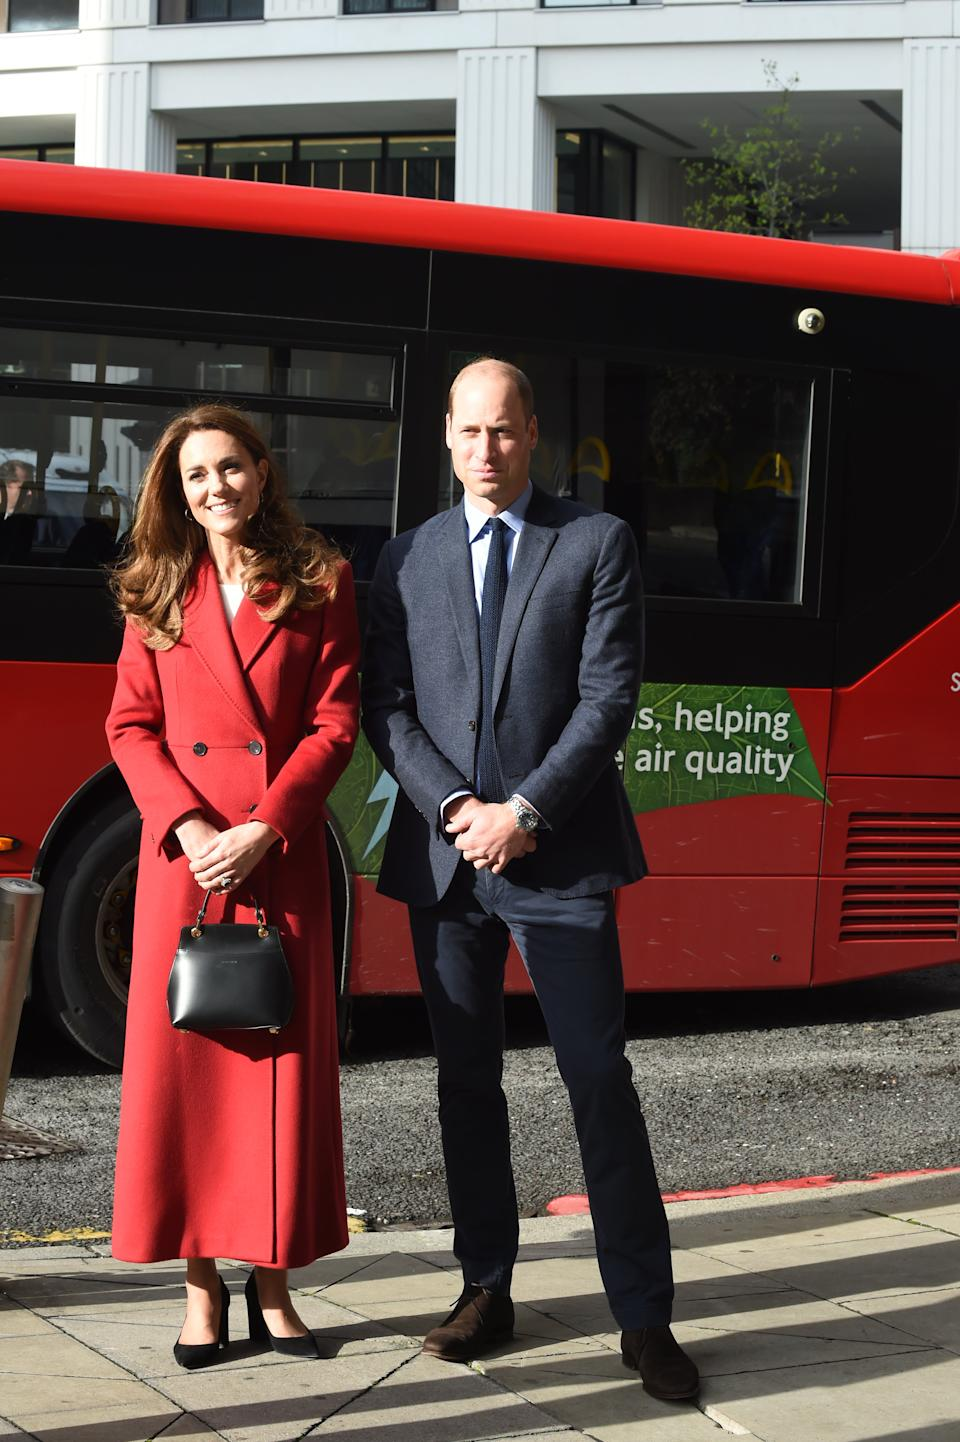 LONDON, ENGLAND - OCTOBER 20: Prince William, Duke of Cambridge and Catherine, Duchess of Cambridge visit the launch of the Hold Still campaign at Waterloo Station on October 20, 2020 in London, England. (Photo by Jeremy Selwyn - WPA Pool/Getty Images)